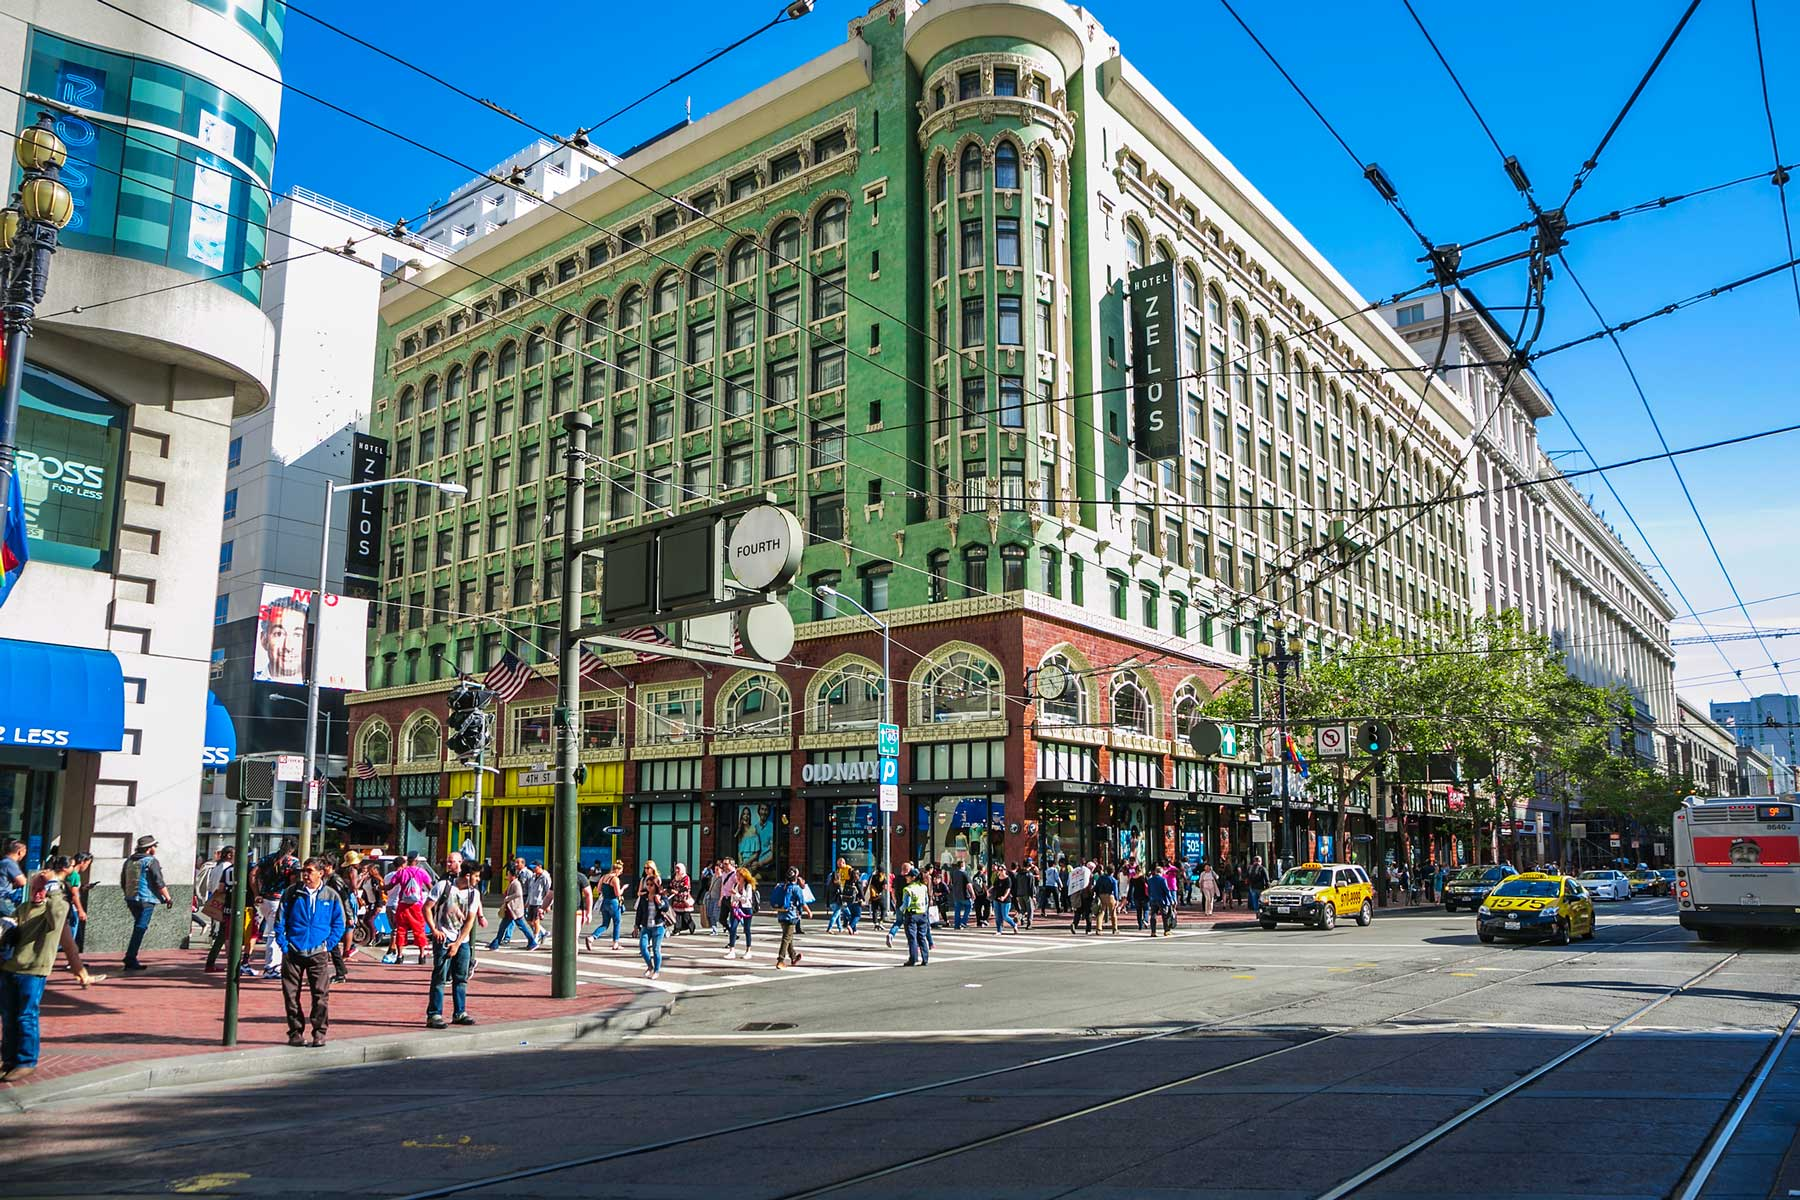 Market street, around Union Square in San Francisco on a sunny day